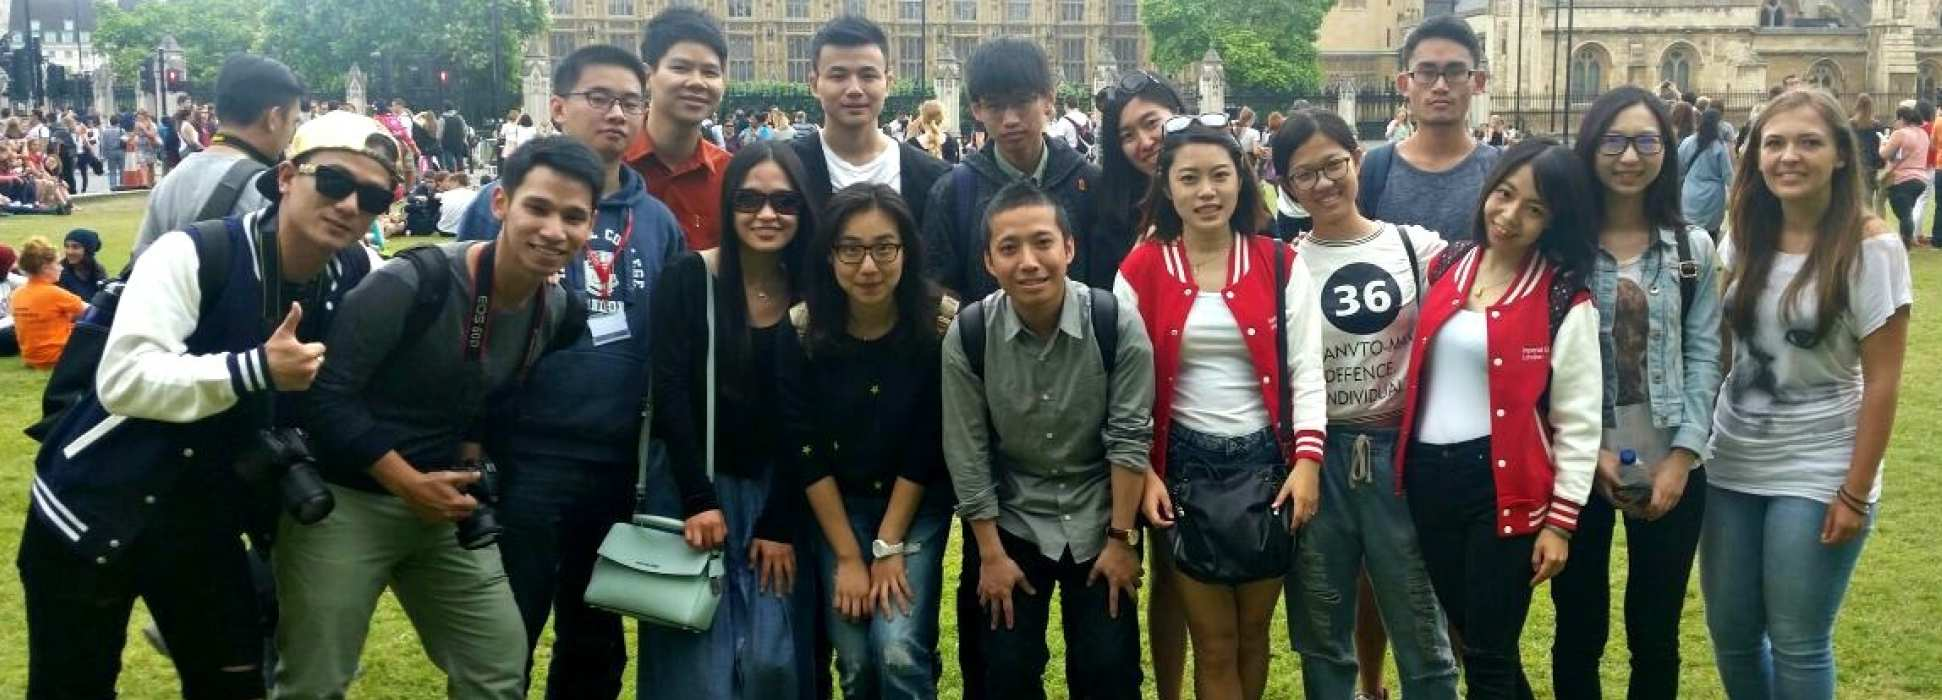 International students on a trip